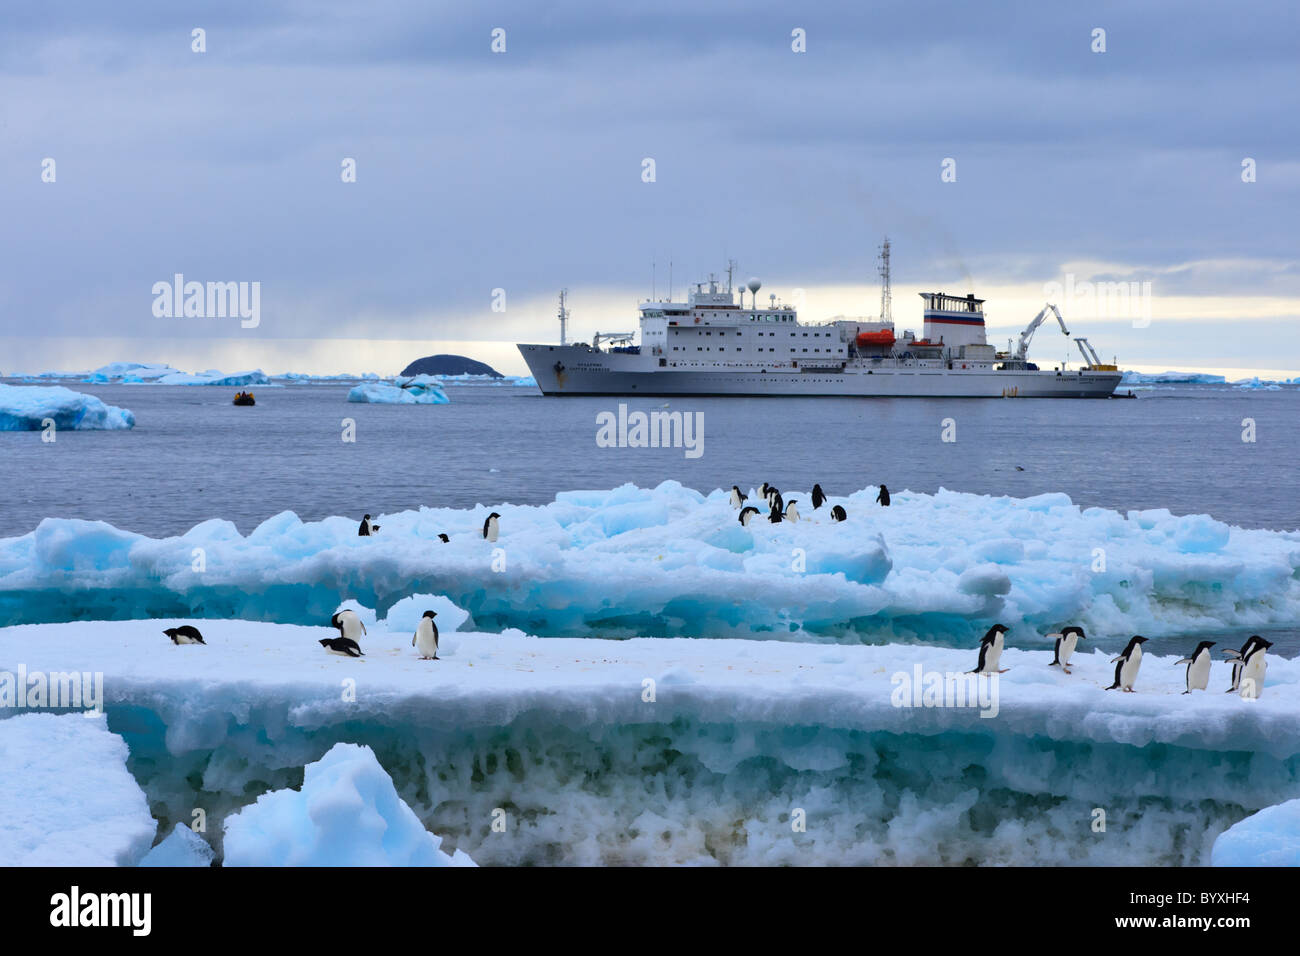 View of tourist ship from Paulet Island with Adelie Penguins in the foreground, Antarctic Peninsula - Stock Image